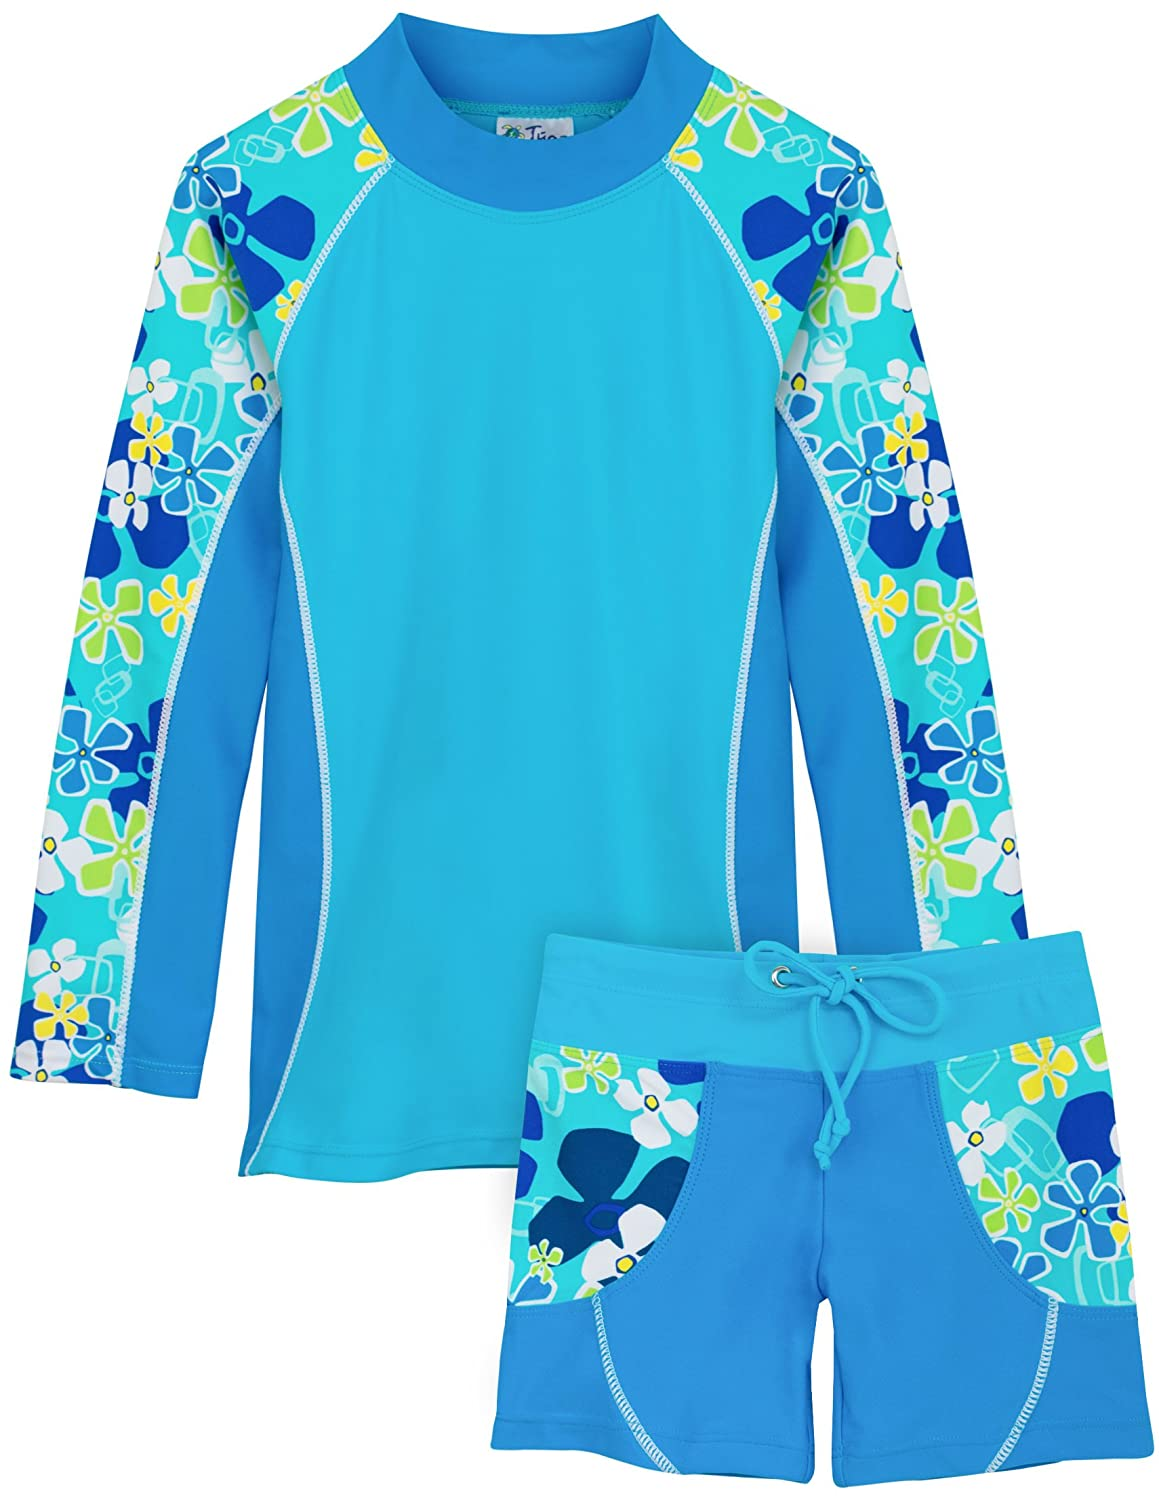 UPF 50 Sun Protection Tuga Girls Two-Piece Long Sleeve Swimsuit Set 2-14 Years